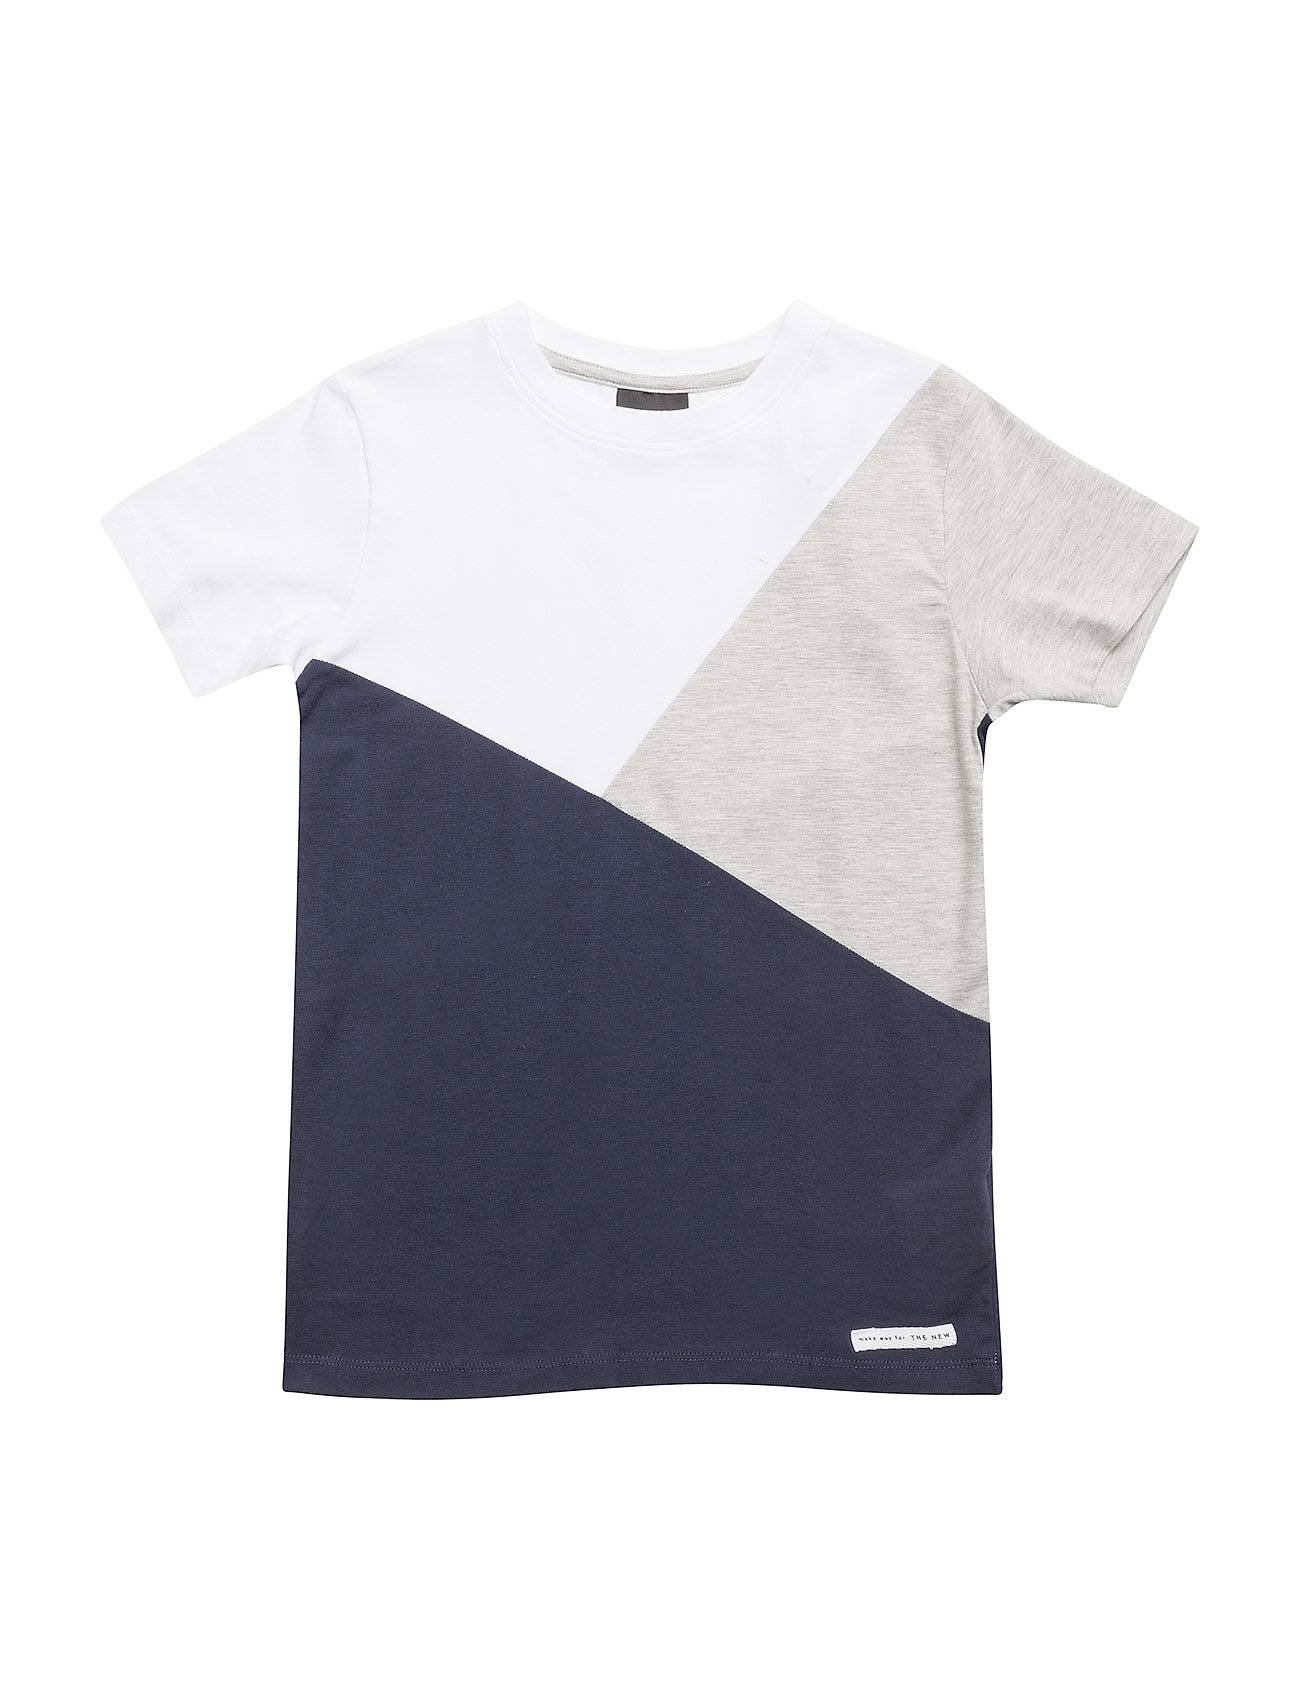 The New Gabriel S_s Tee